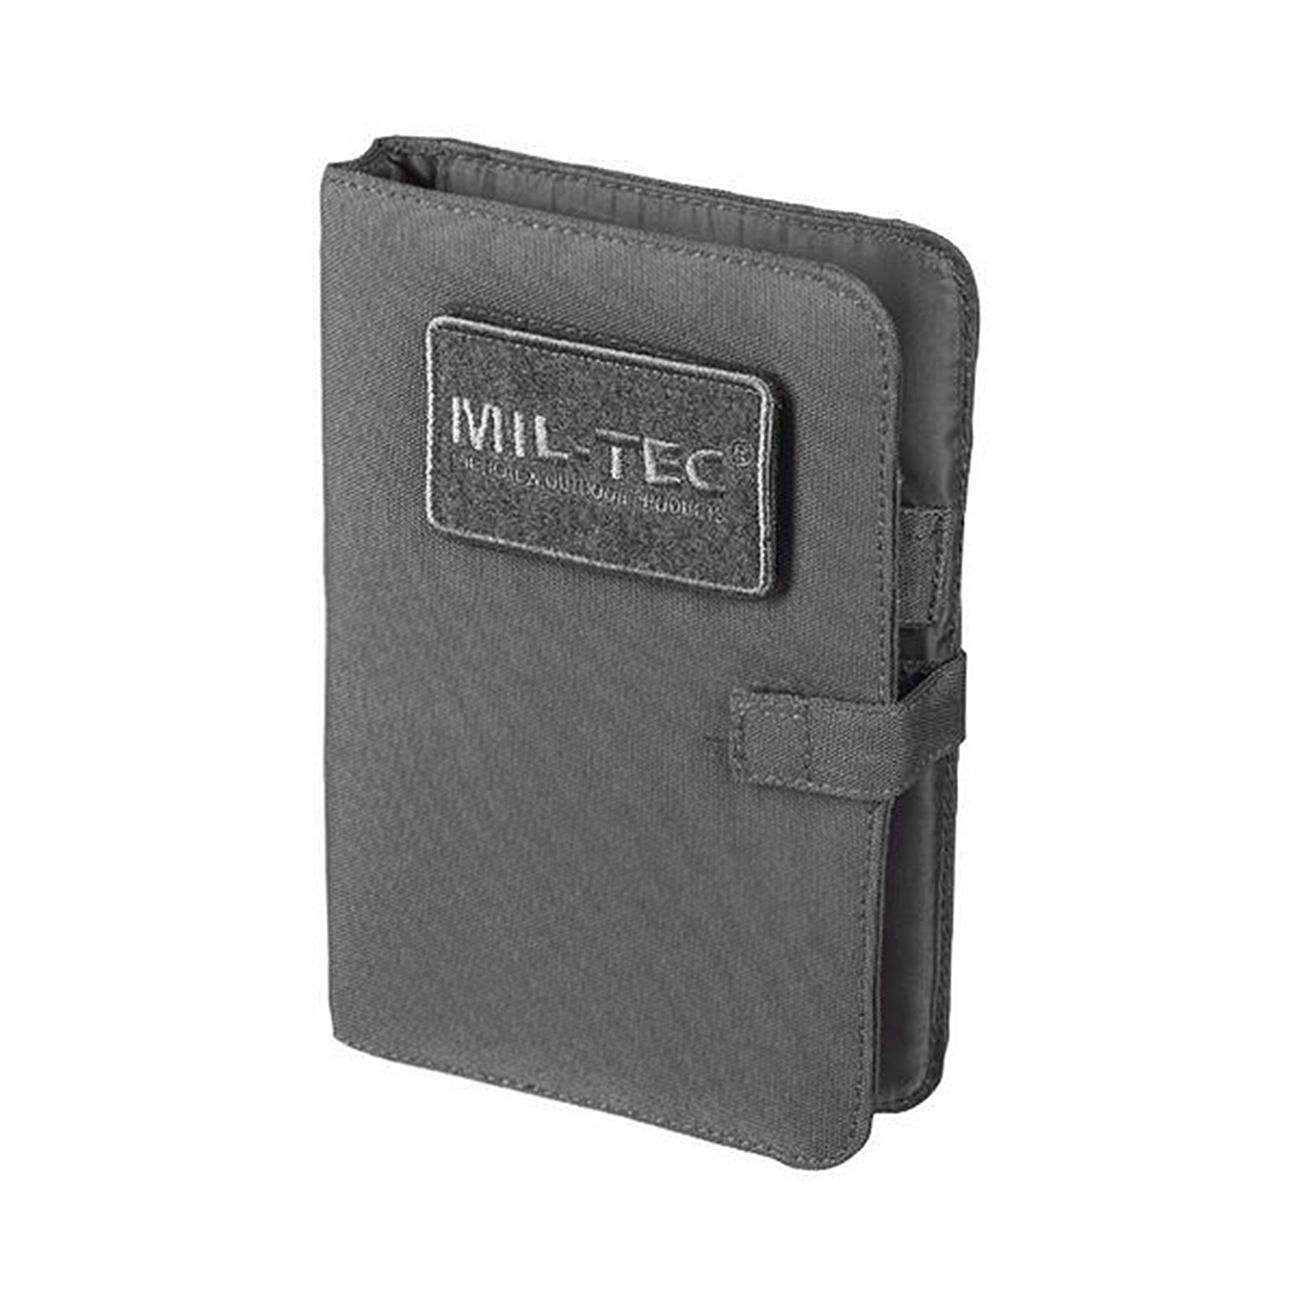 Mil-Tec Tactical Notizbuch Small urban grey 0